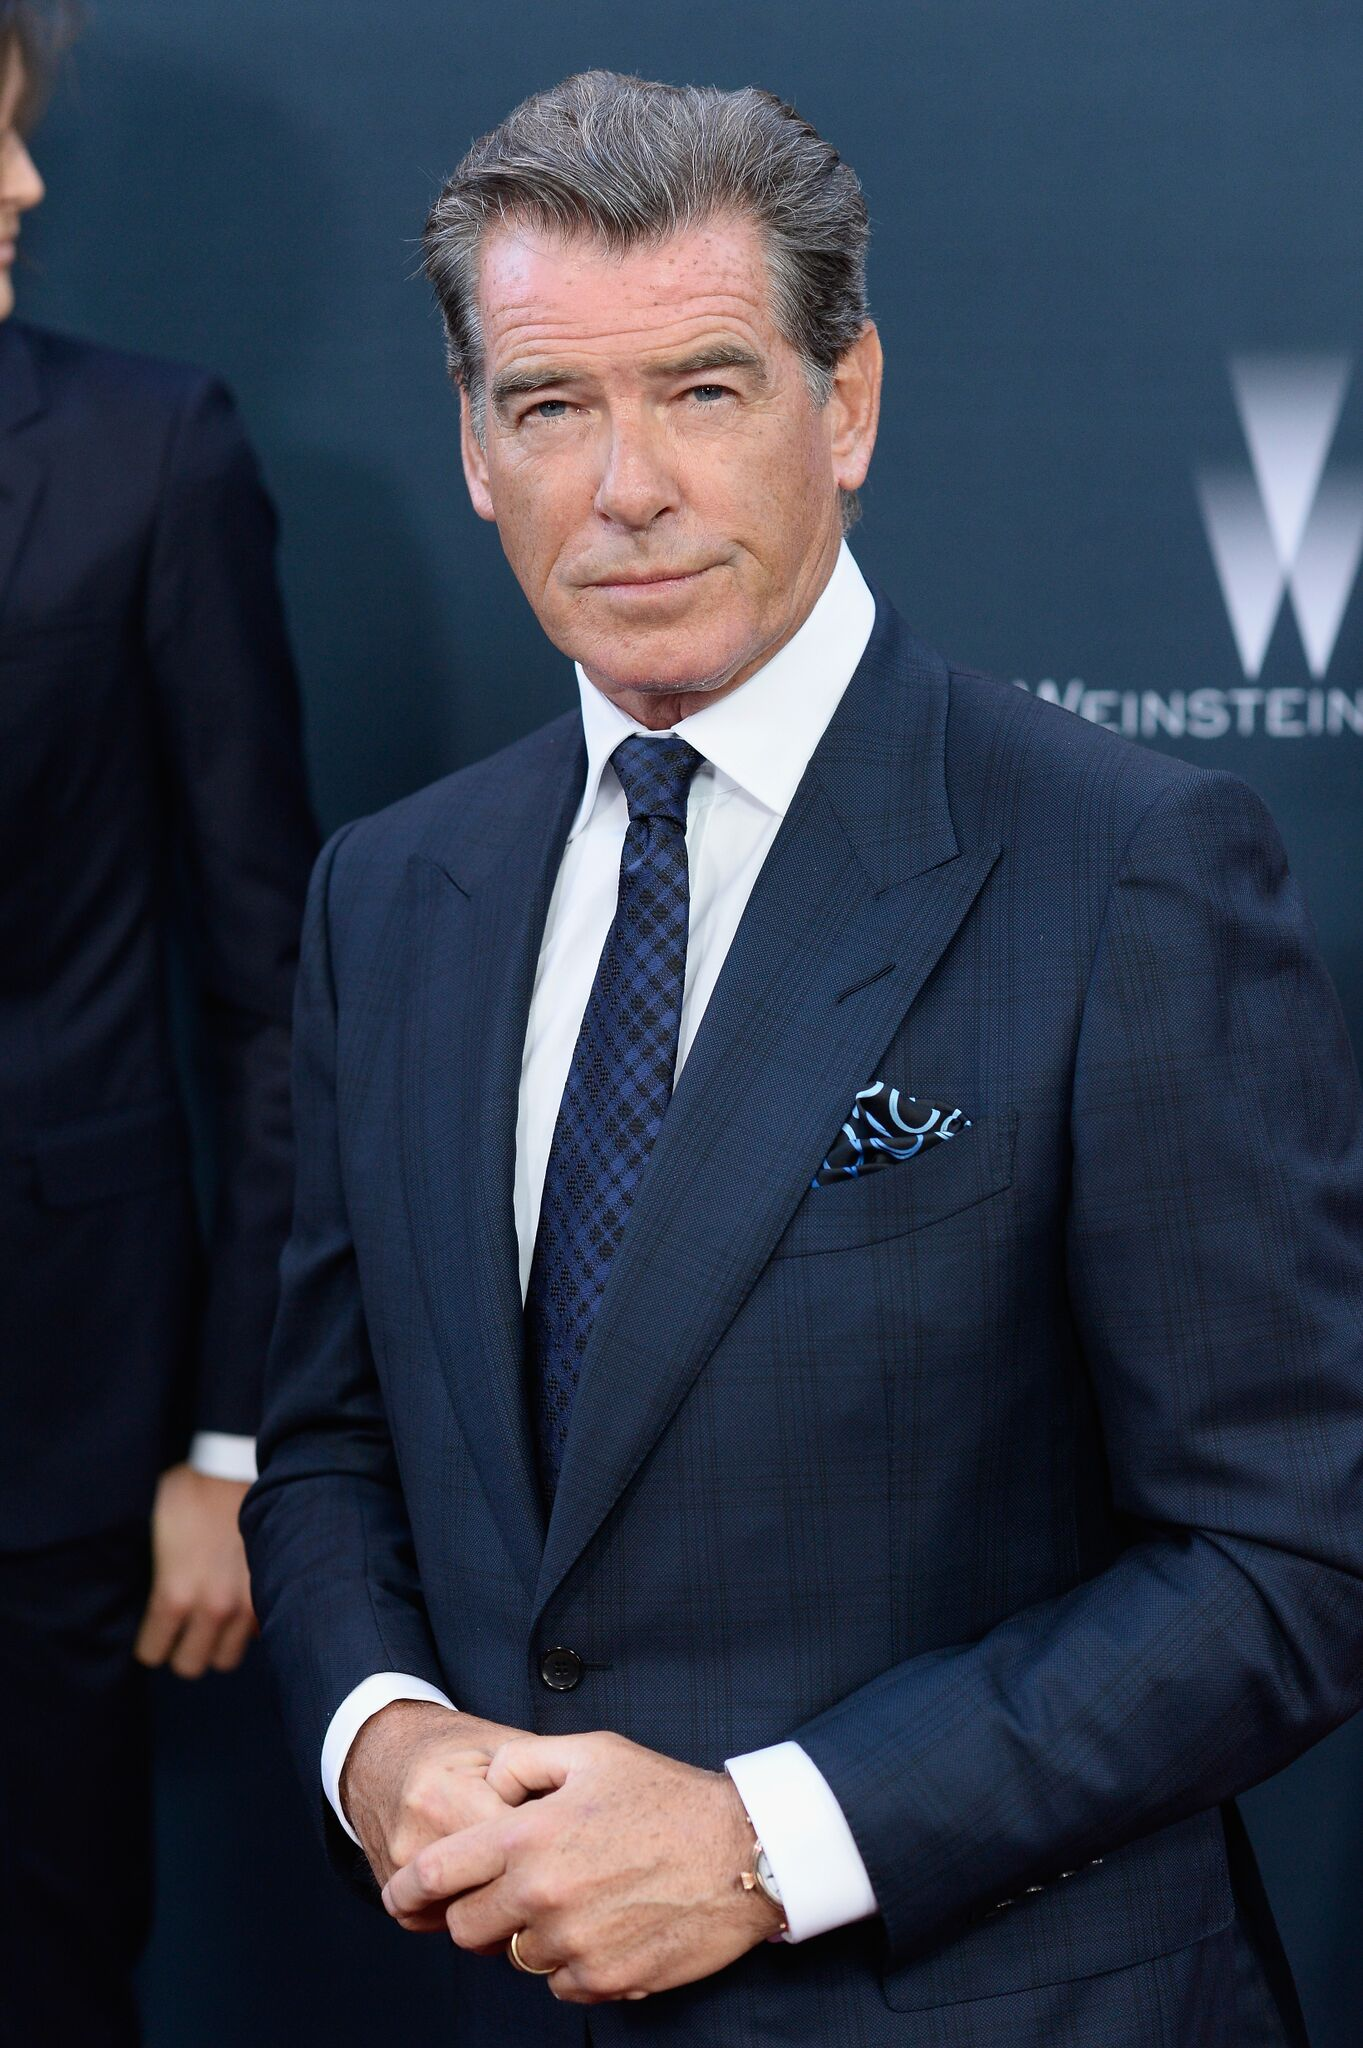 Pierce Brosnan arrives at Regal Cinemas L.A. Live on August 17, 2015 in Los Angeles, California | Photo: Getty Images